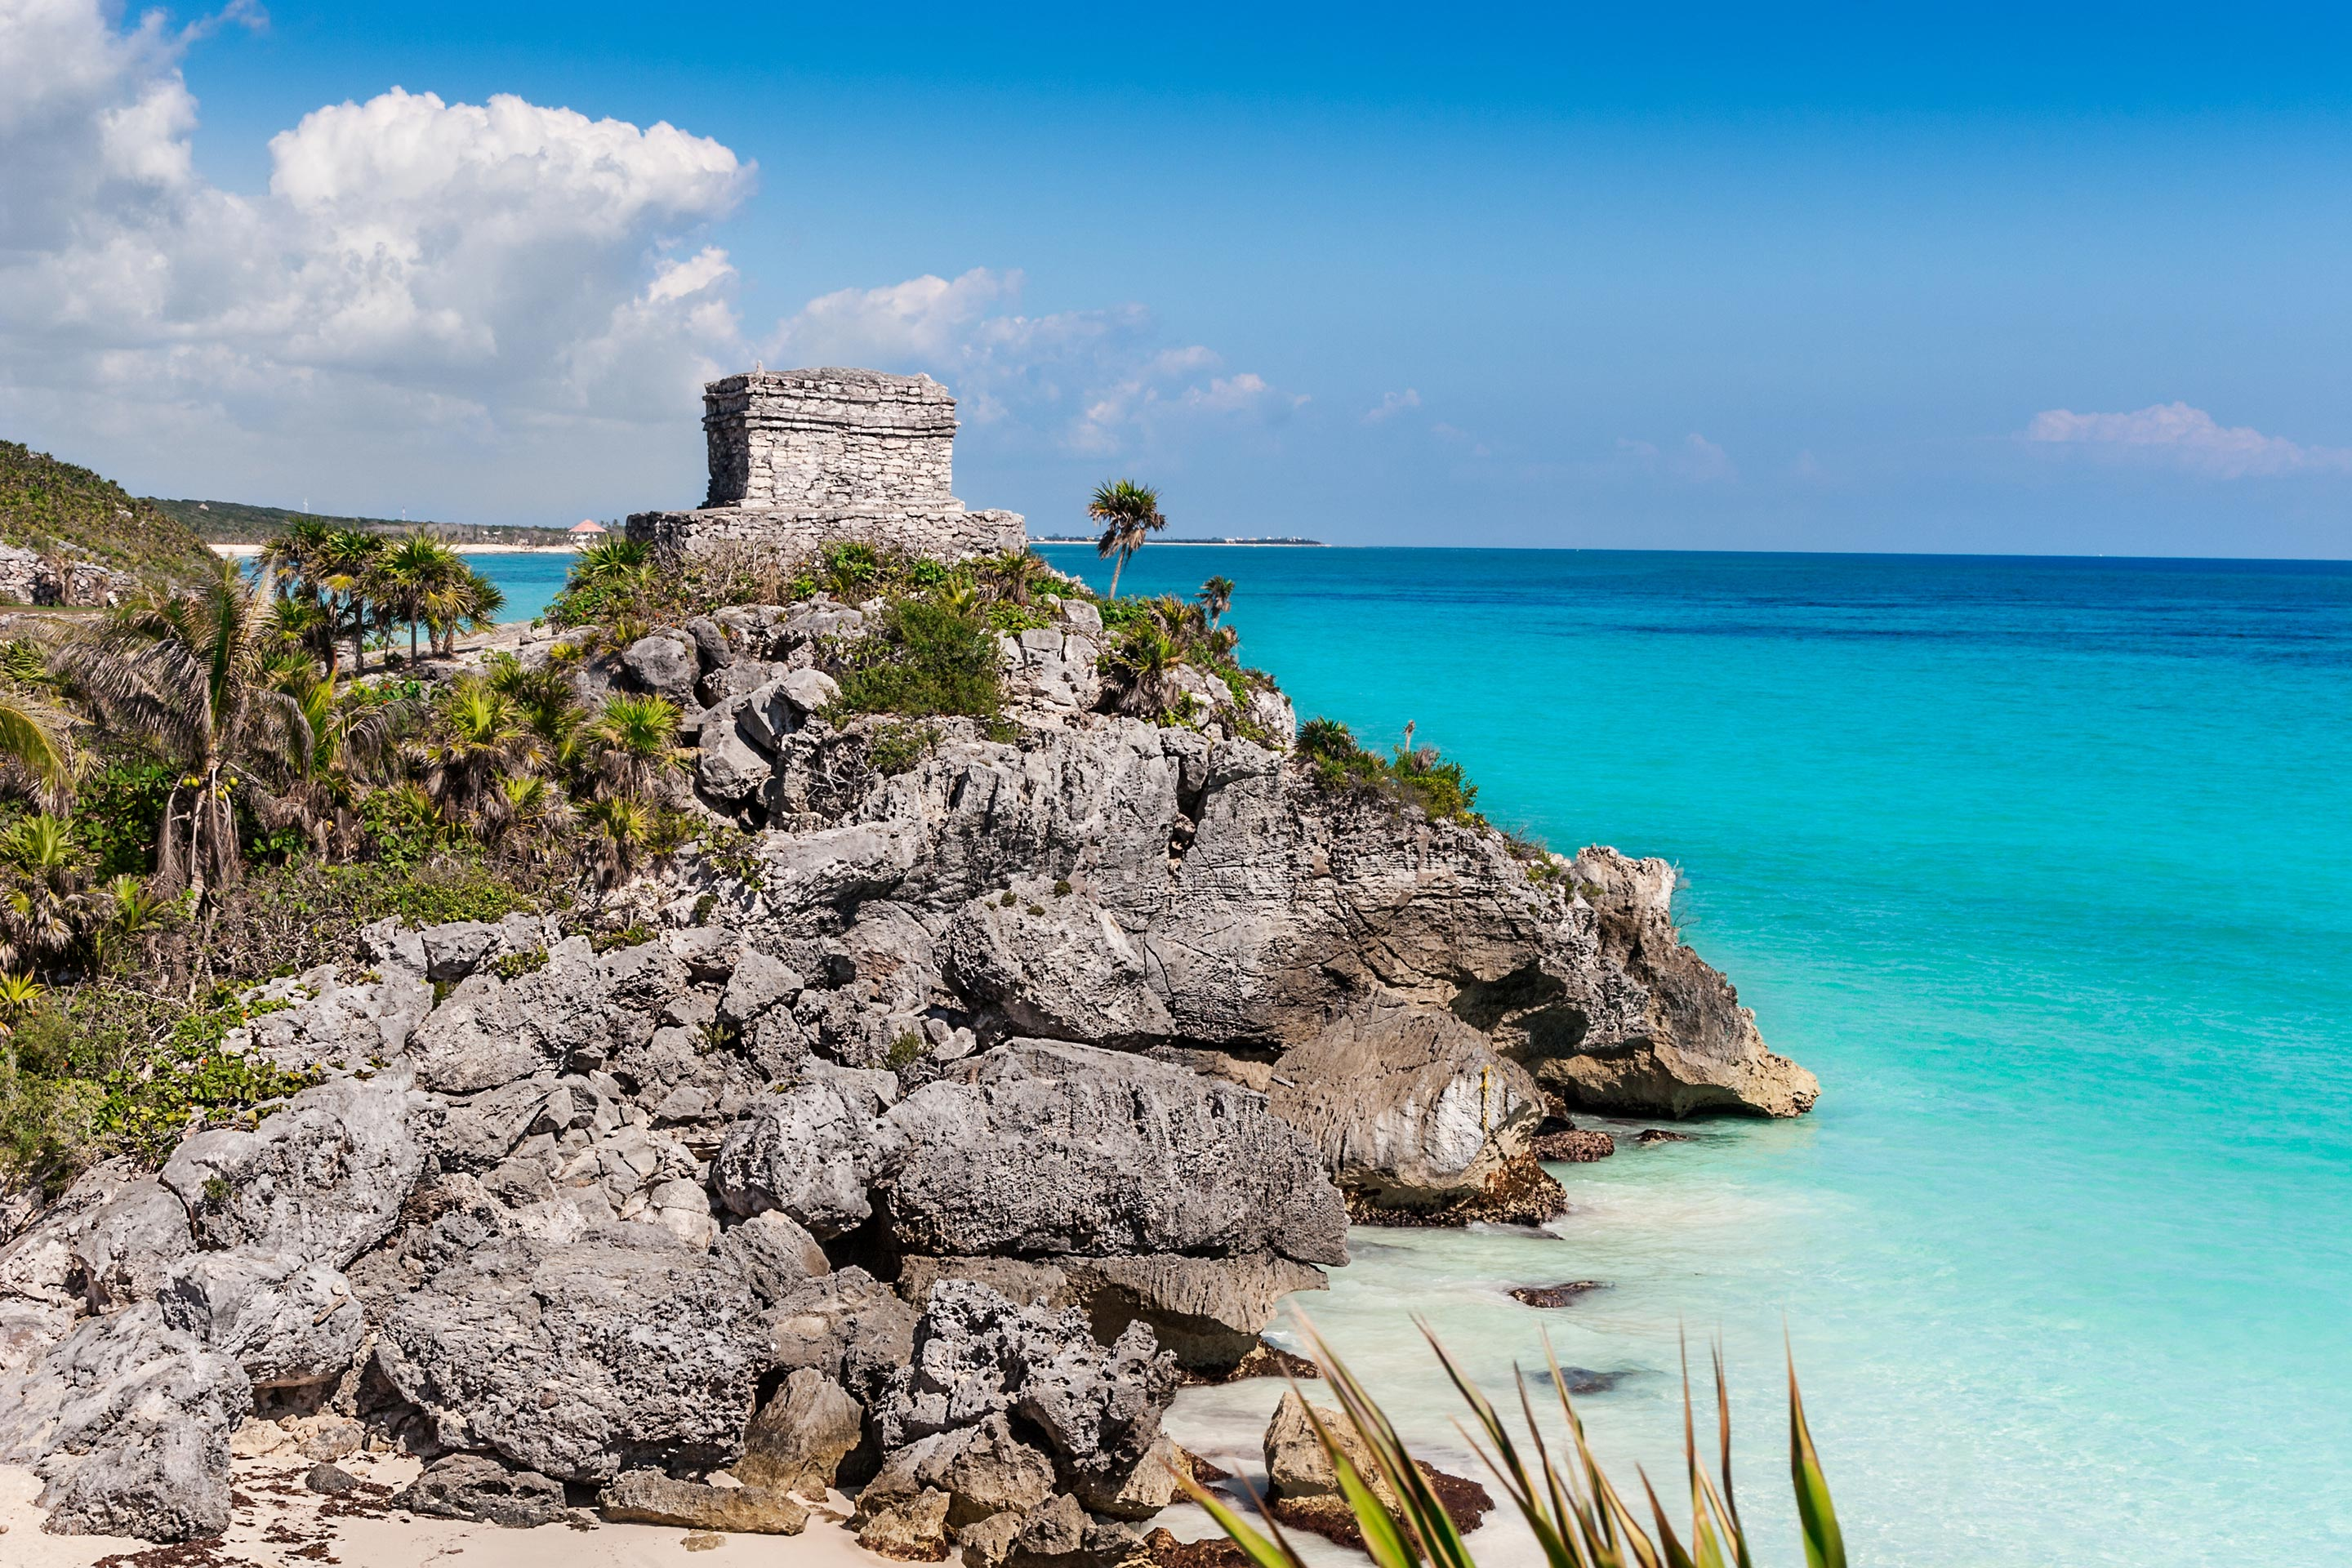 Temple Ruins along the beach in Tulum, Mexico